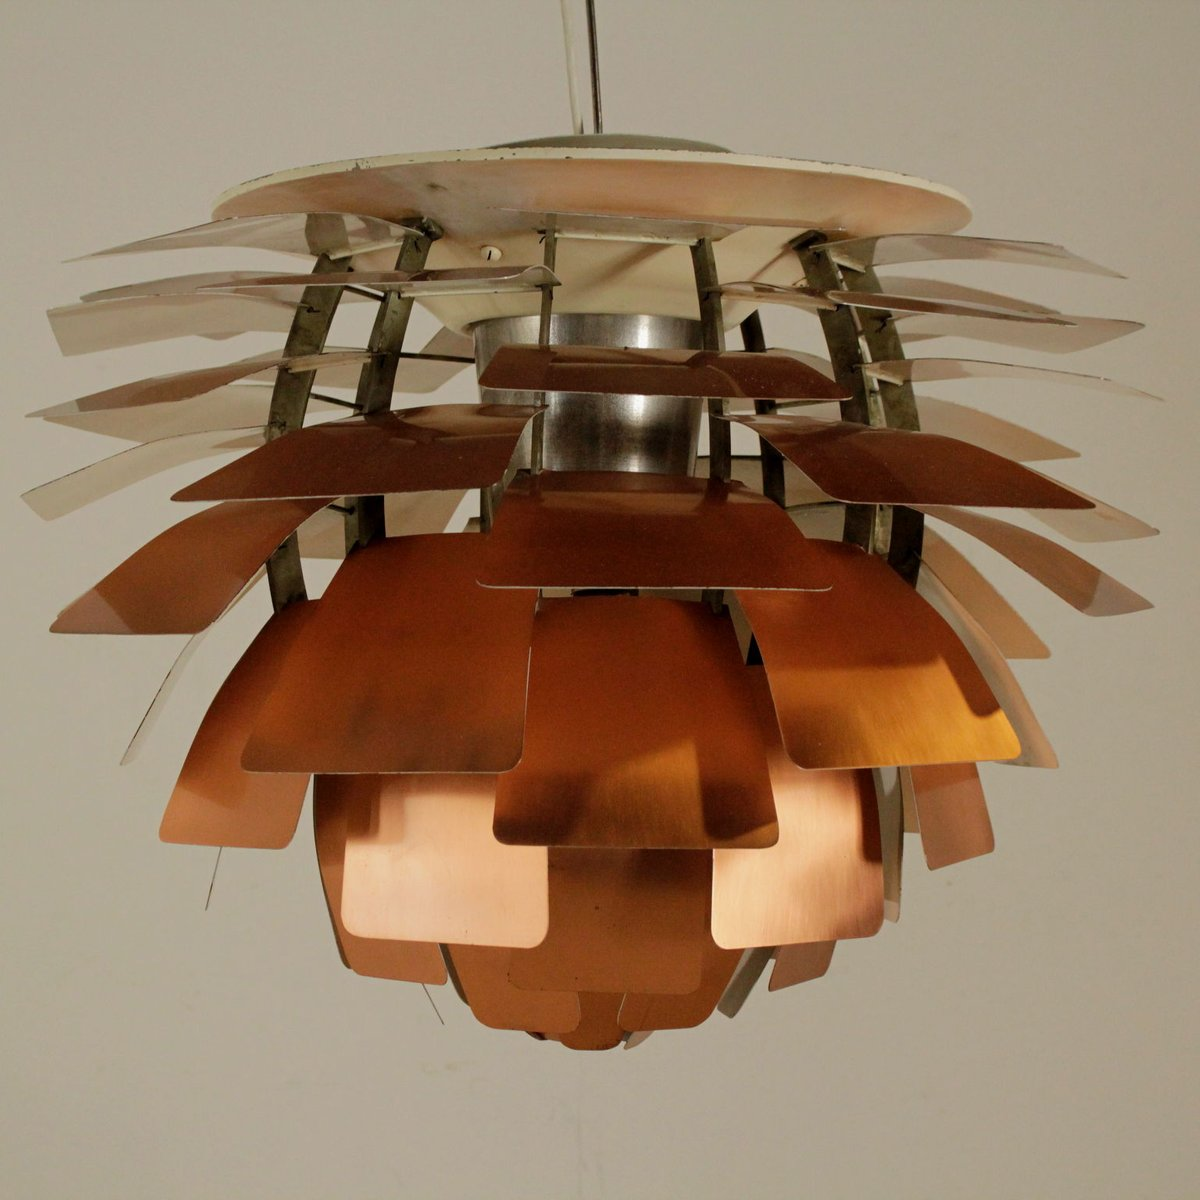 Artichoke copper ceiling lamp by poul henningsen for louis poulsen artichoke copper ceiling lamp by poul henningsen for louis poulsen 1960s for sale at pamono aloadofball